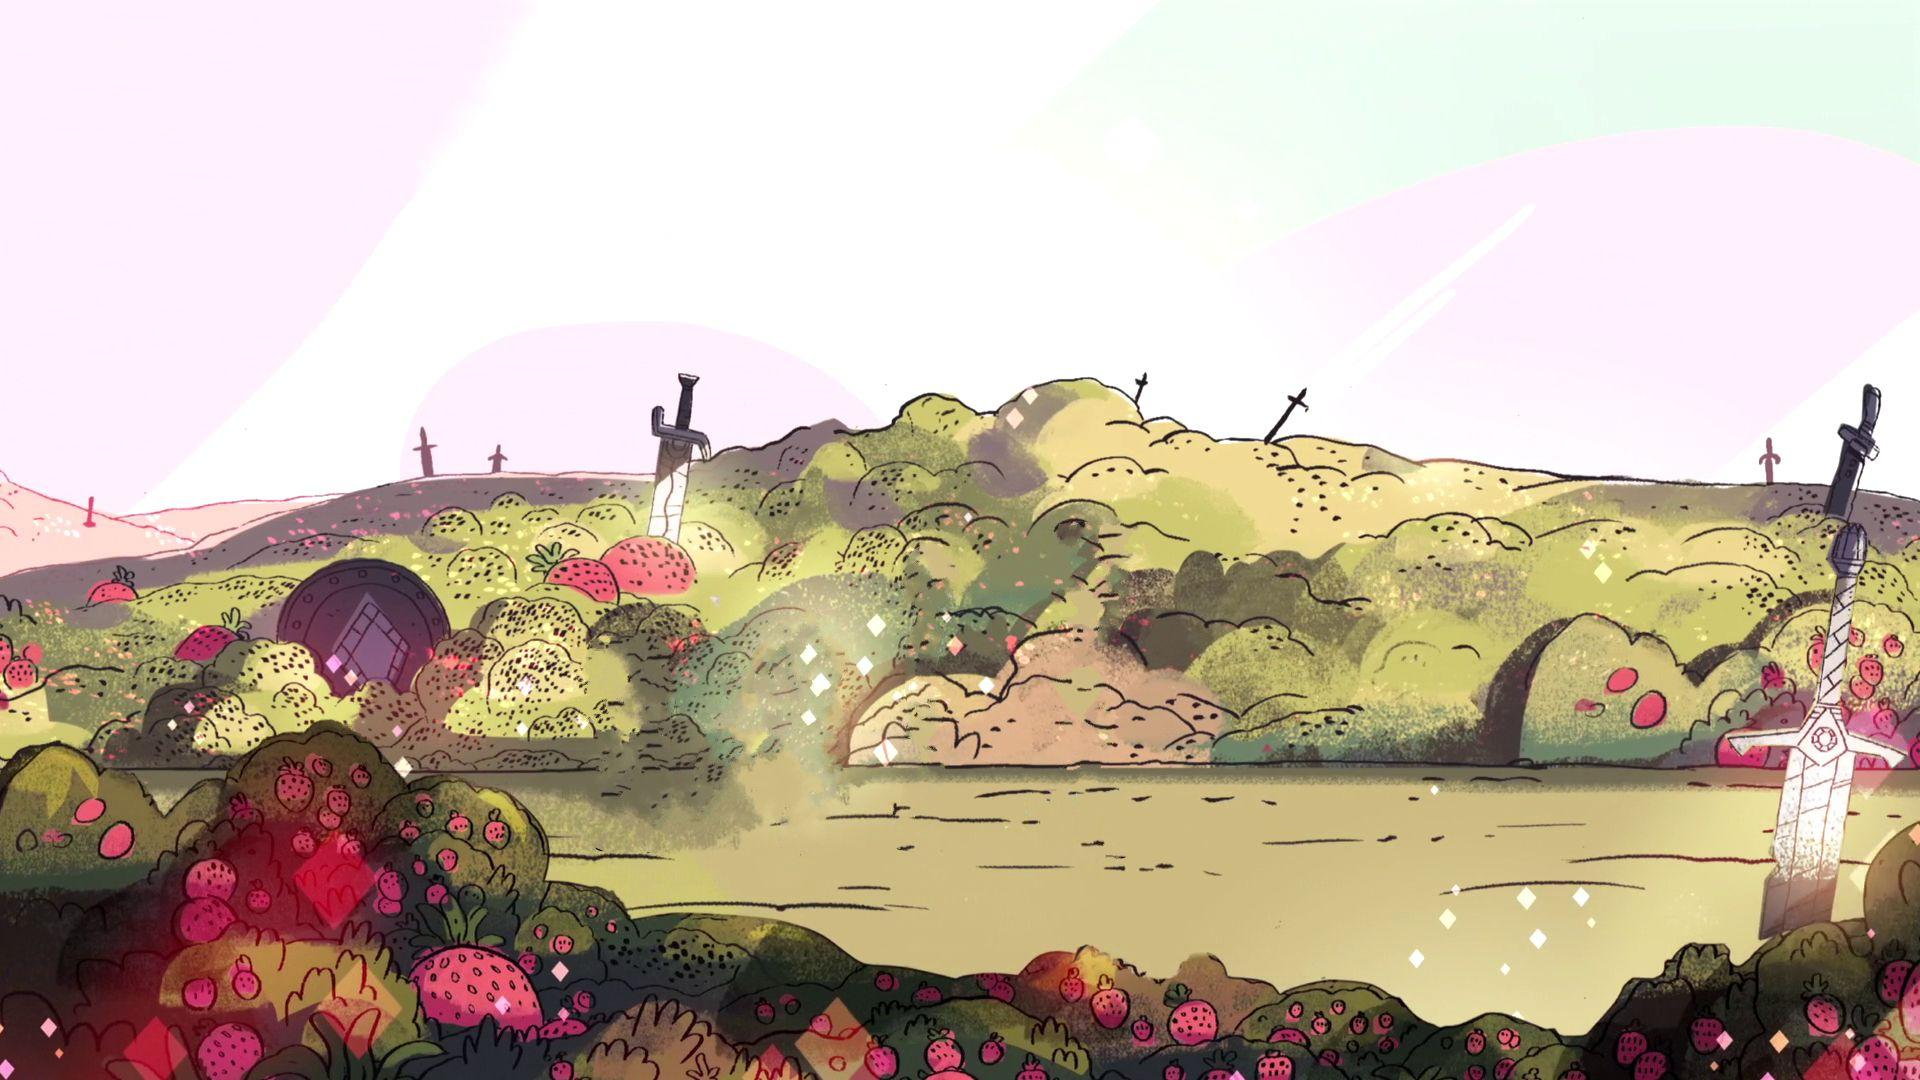 Hd Wallpapers For Laptop 15 6 Inch Screen Steven Universe Wallpapers Wallpaper Cave